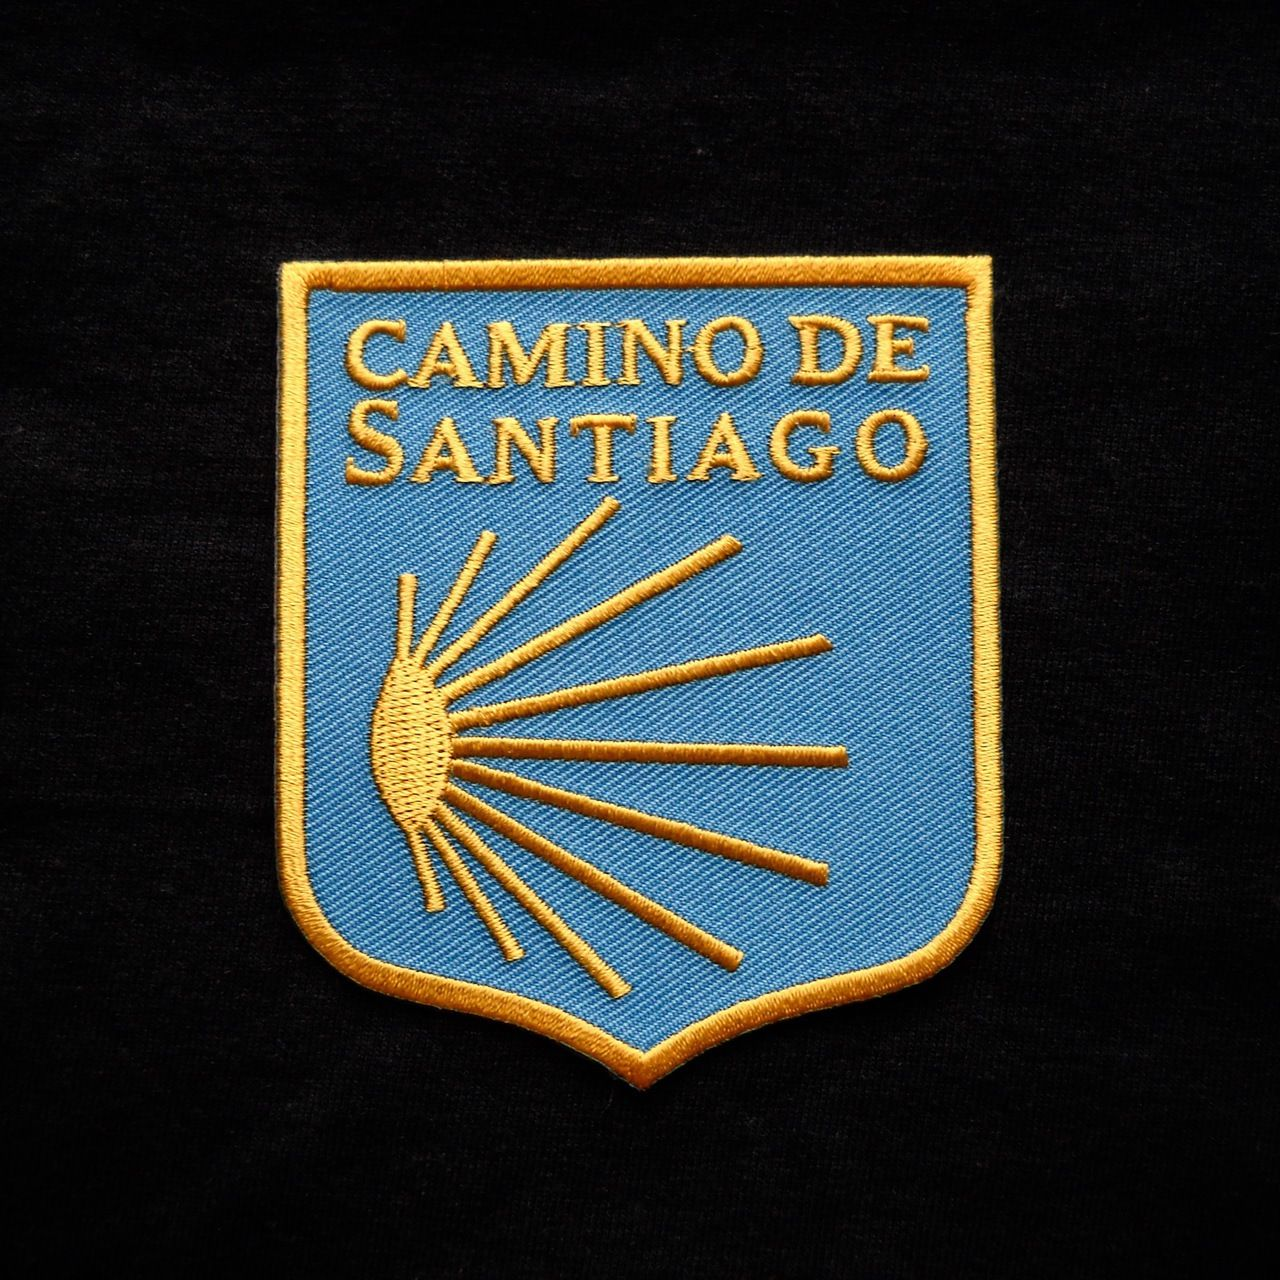 Camino de santiago pilgrim scallop shell patch scallop shells camino de santiago pilgrim scallop shell patch biocorpaavc Image collections